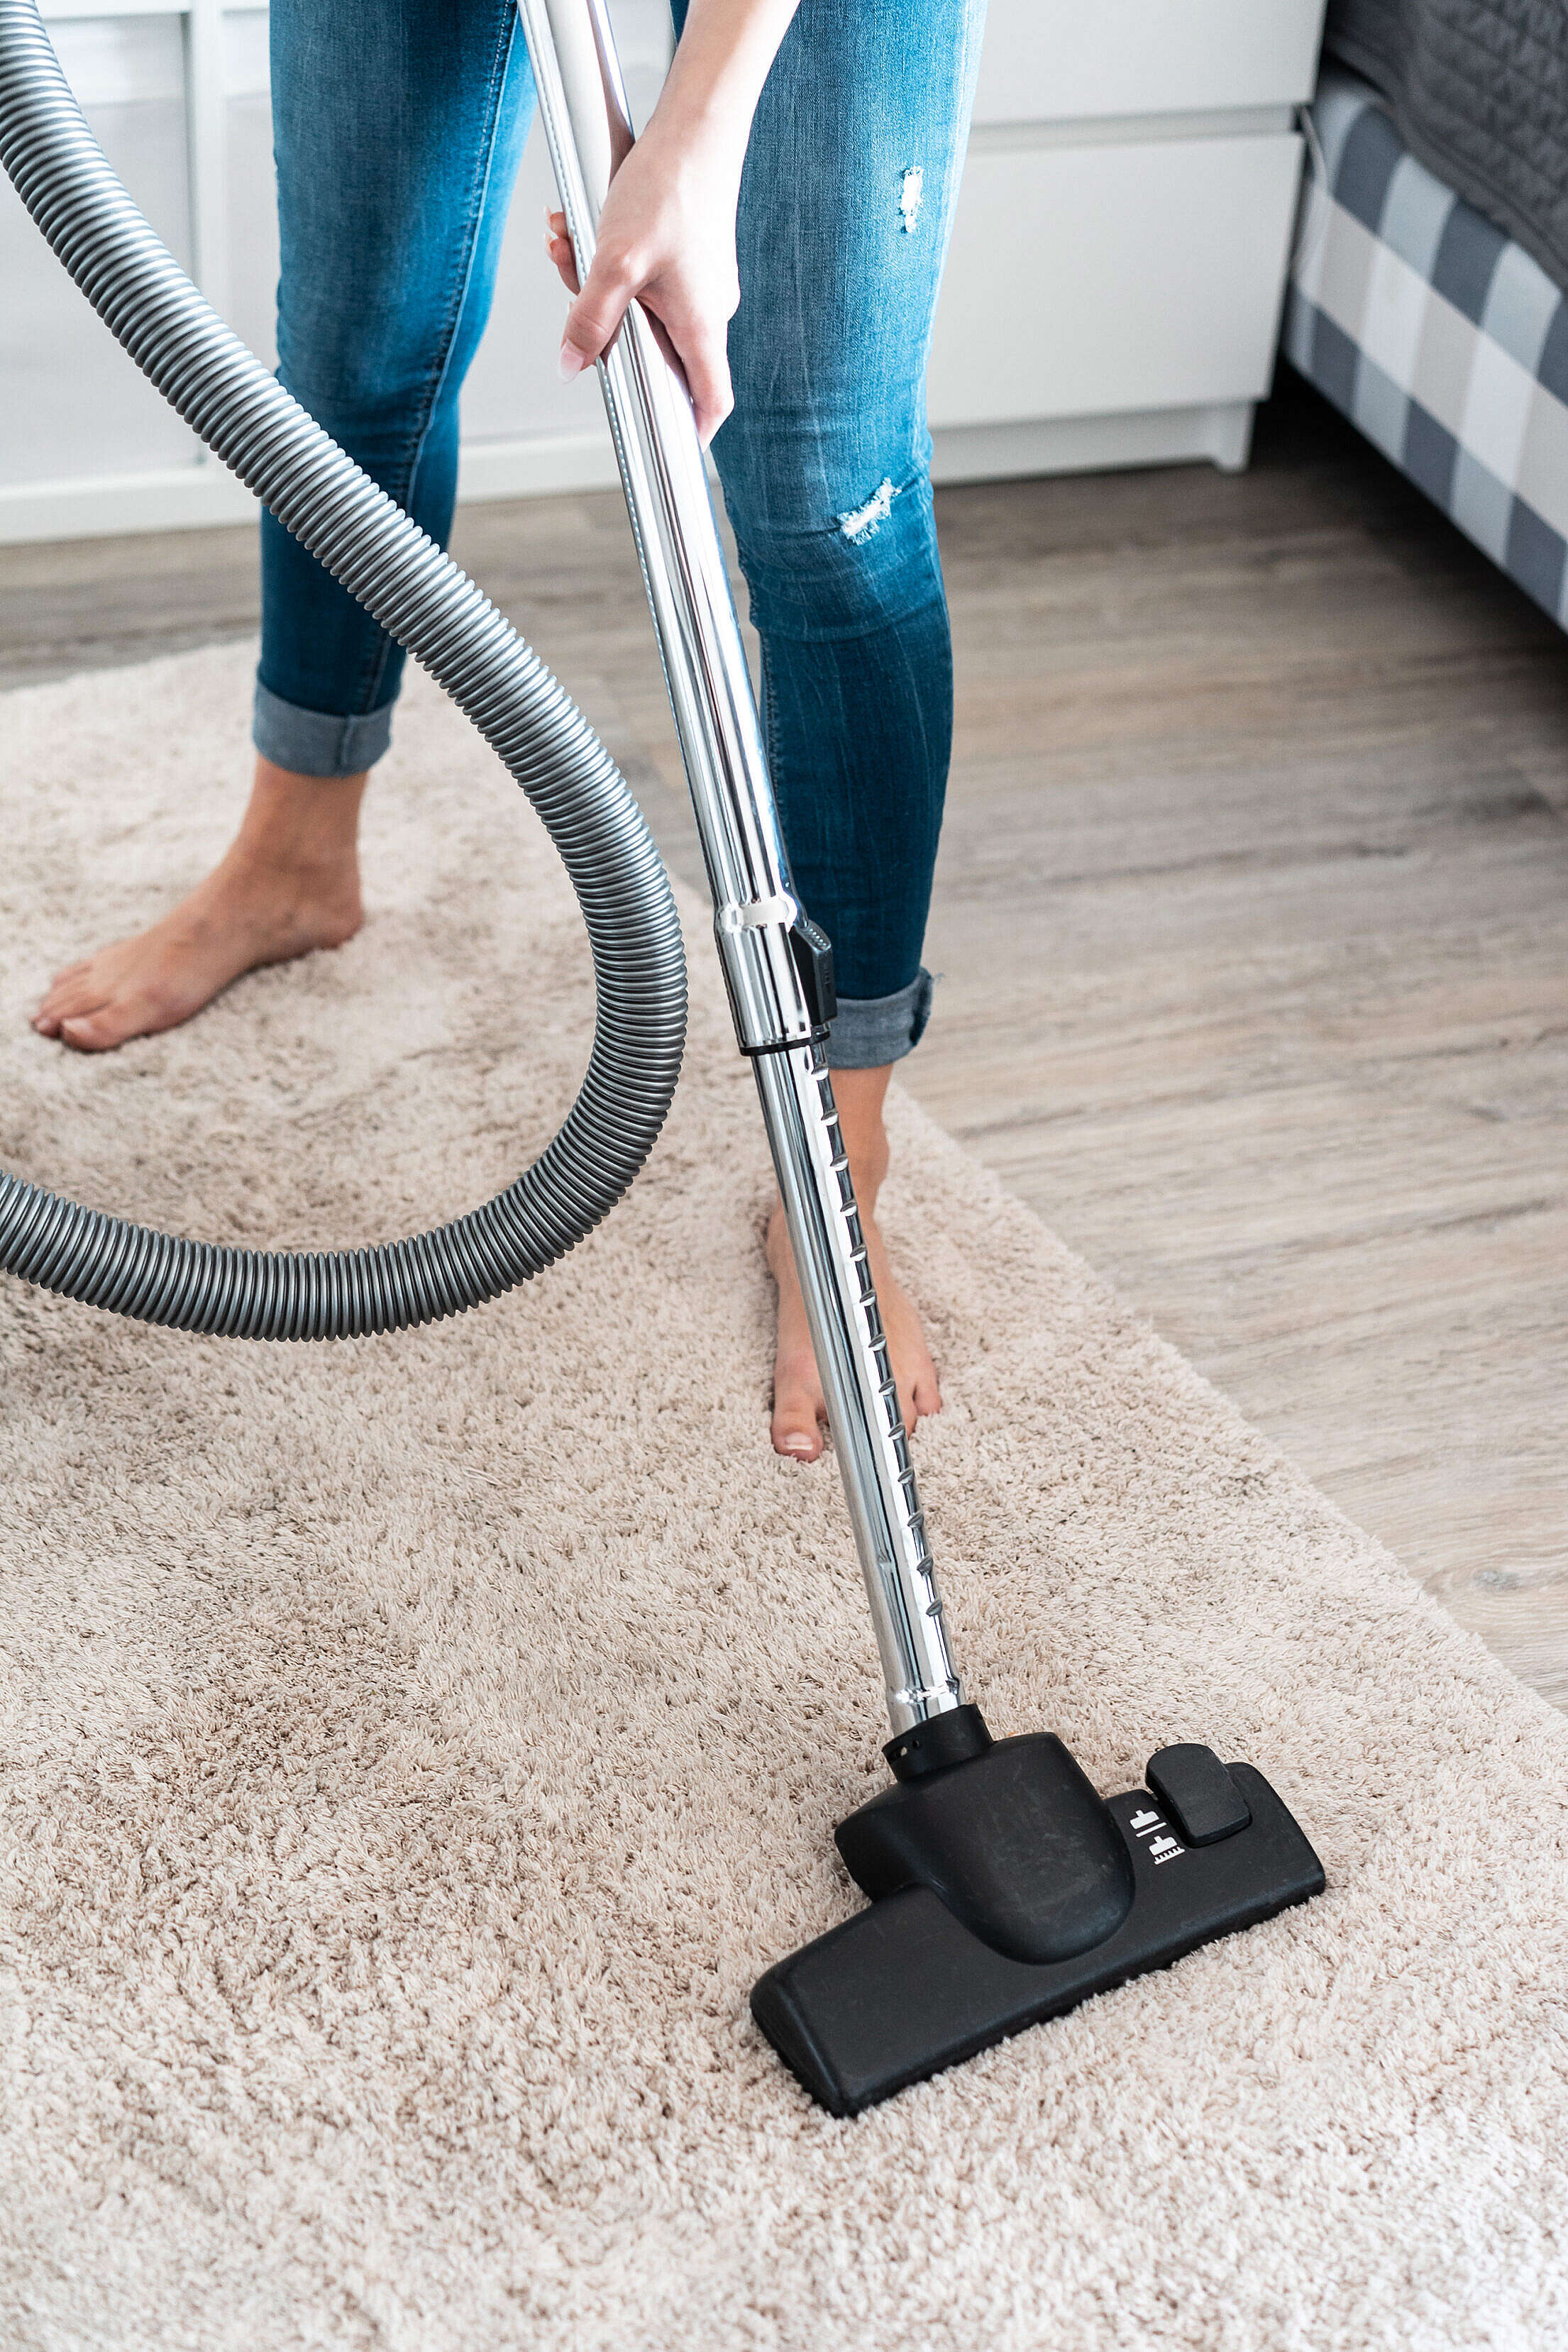 woman-cleaning-vacuuming-the-carpet-at-home-free-photo-2210x3315.jpg (1.02 MB)